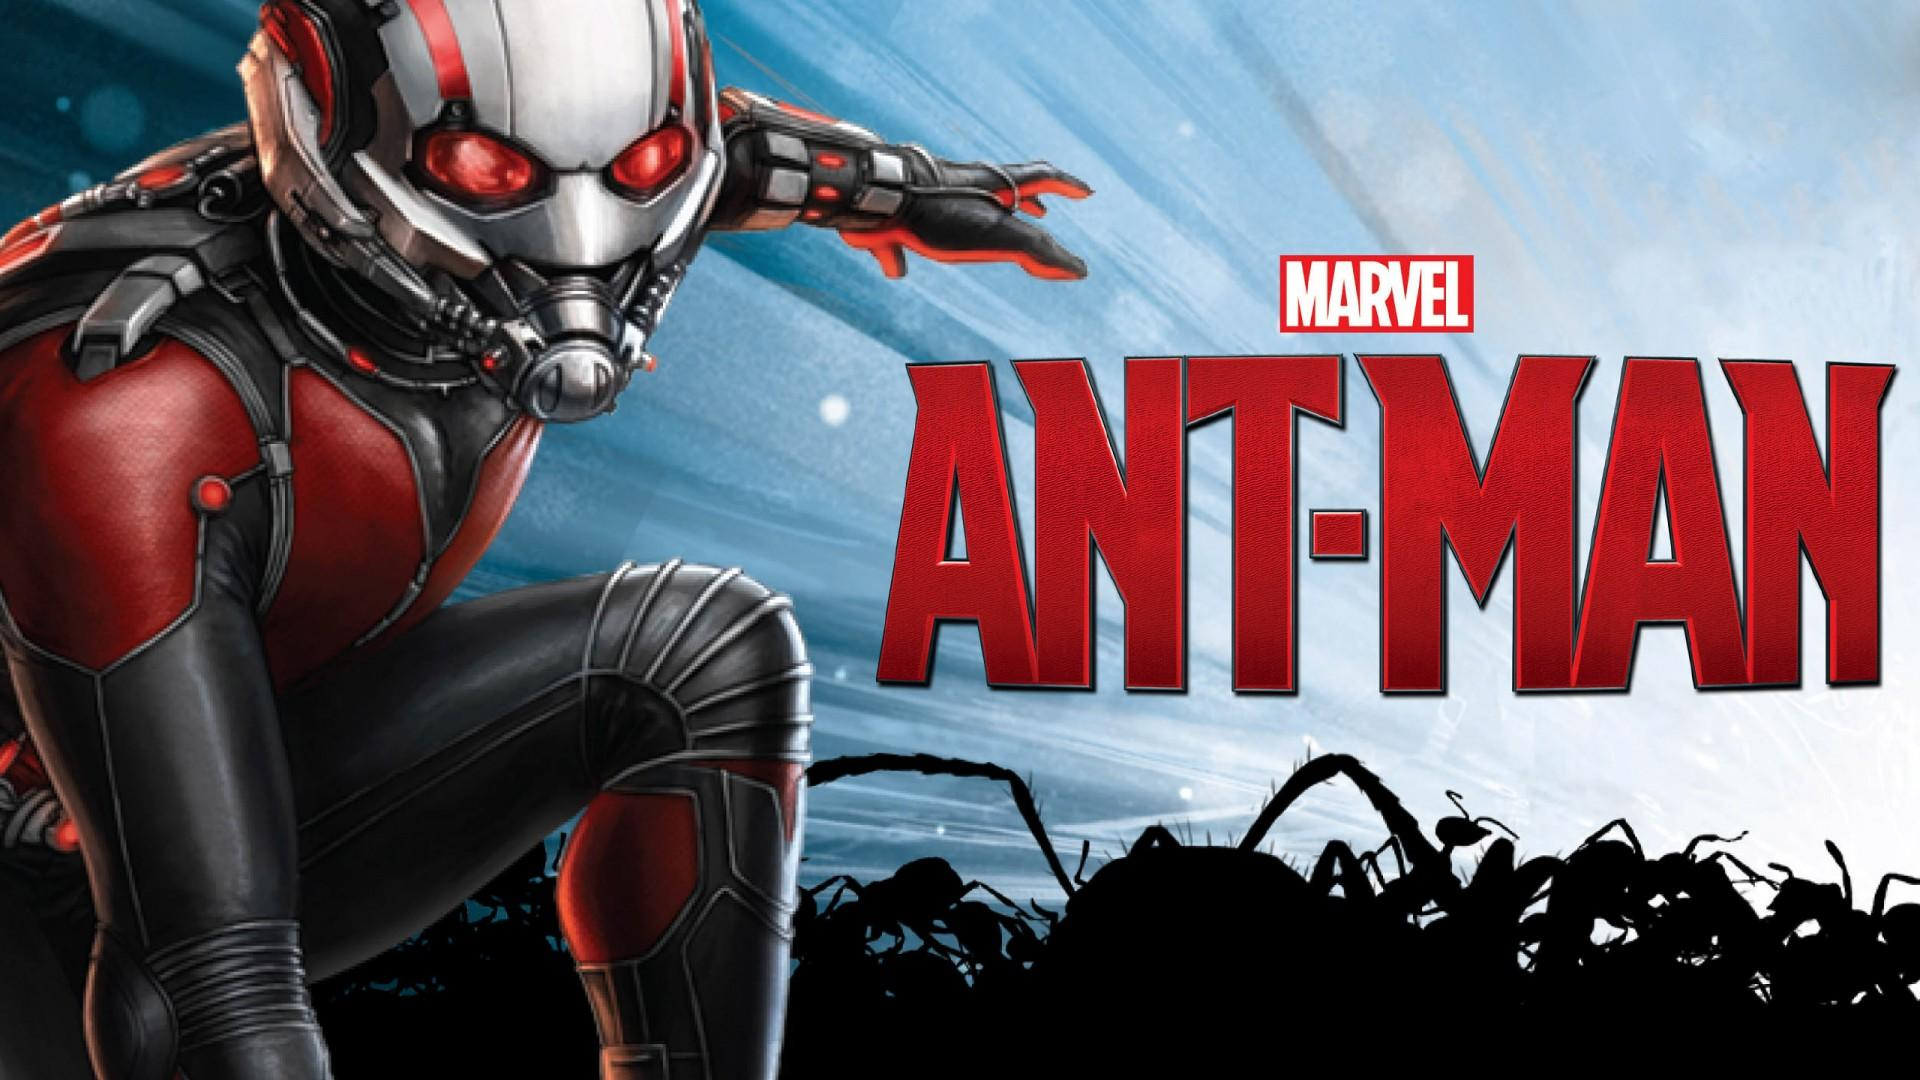 Marvel Ant Man Wallpapers